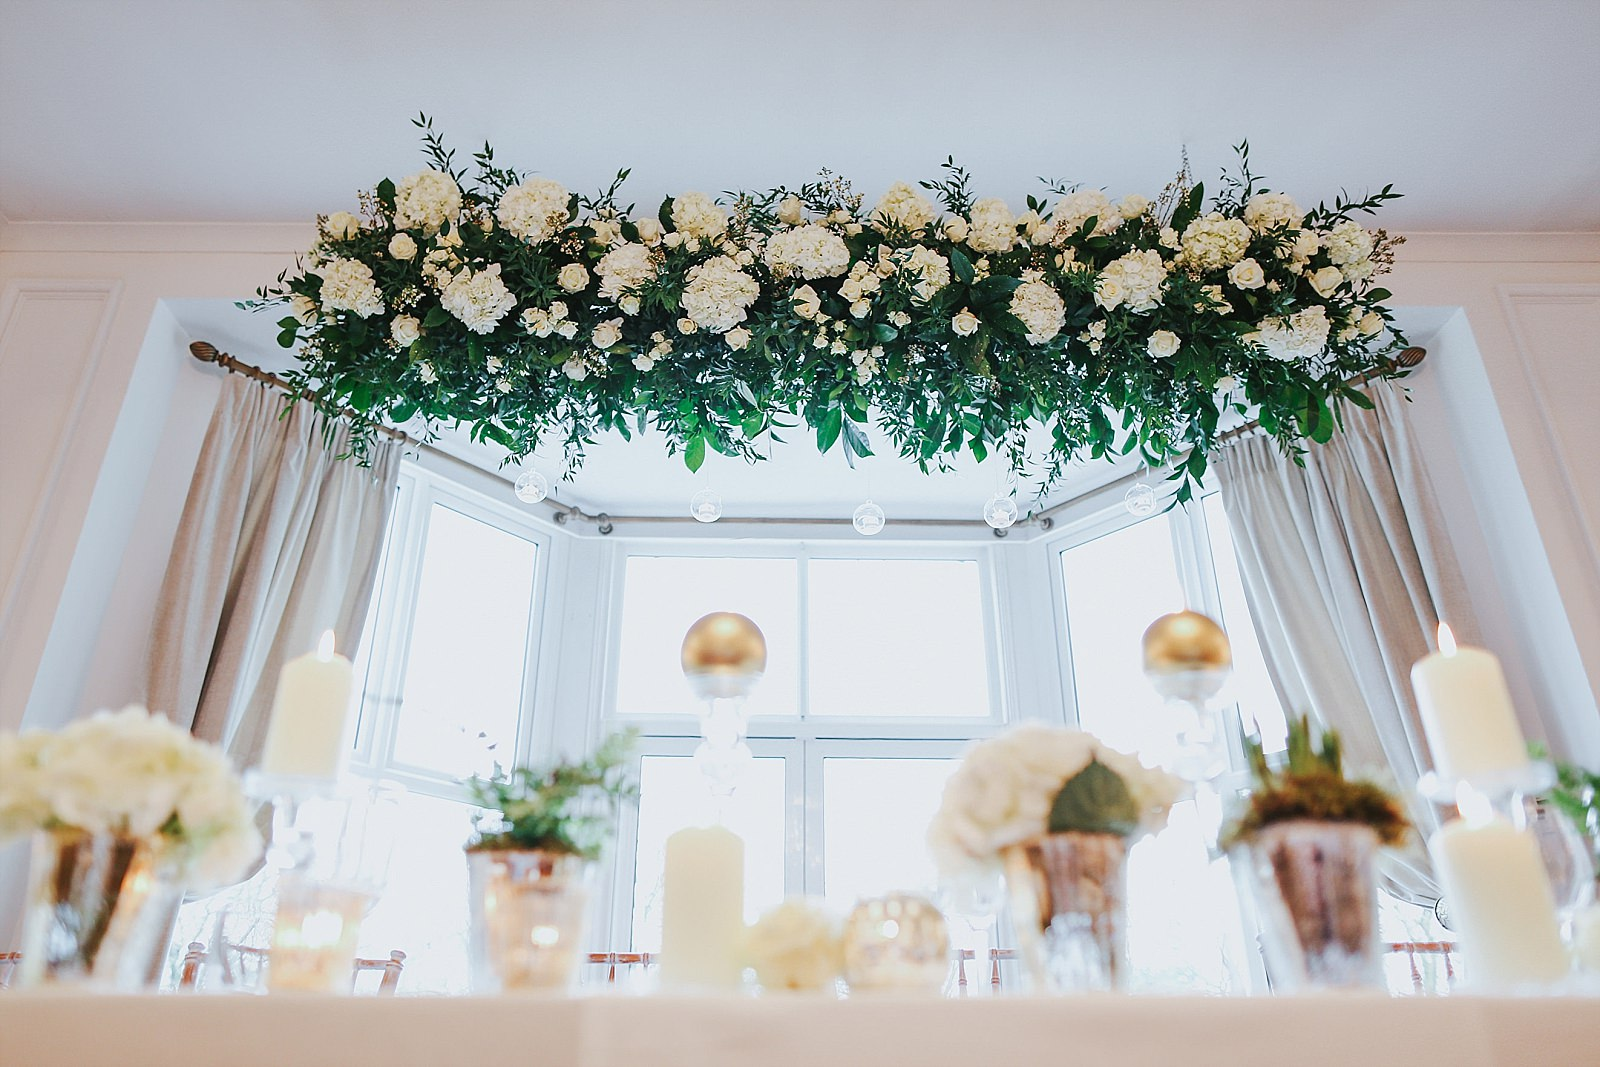 hanging ceiling suspended with white flowers